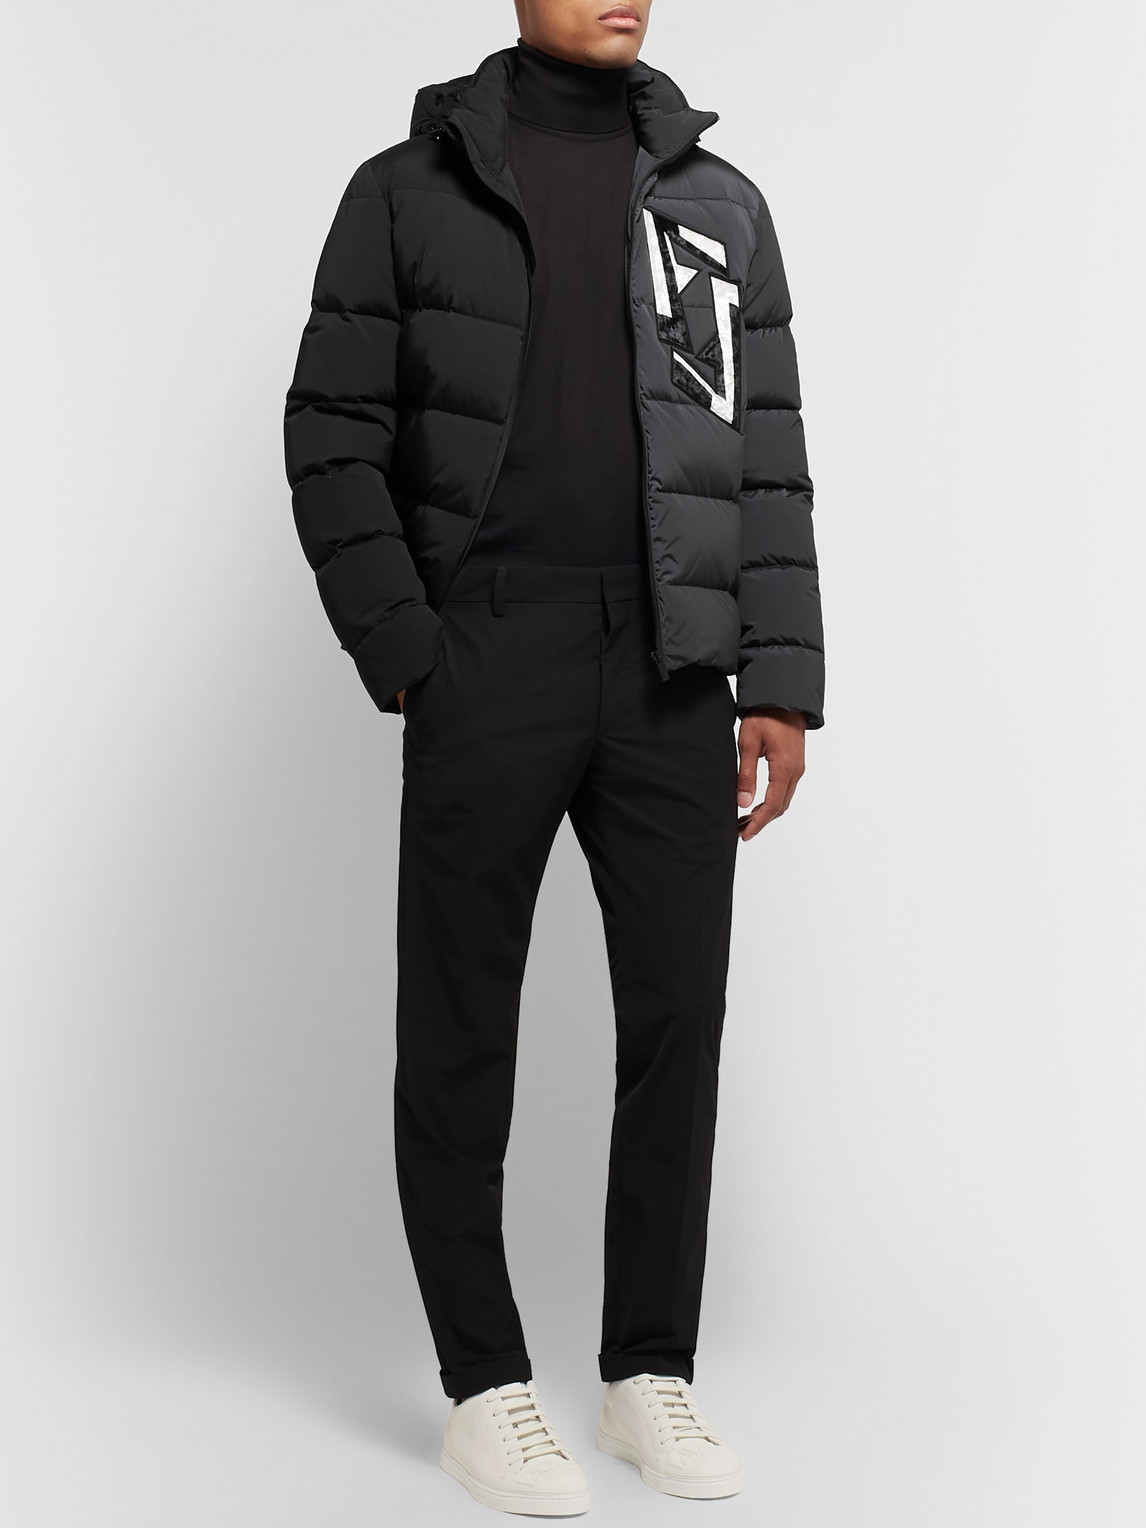 Fendi Jackets SLIM-FIT LOGO-APPLIQUÉD COLOUR-BLOCK QUILTED NYLON-BLEND HOODED DOWN JACKET